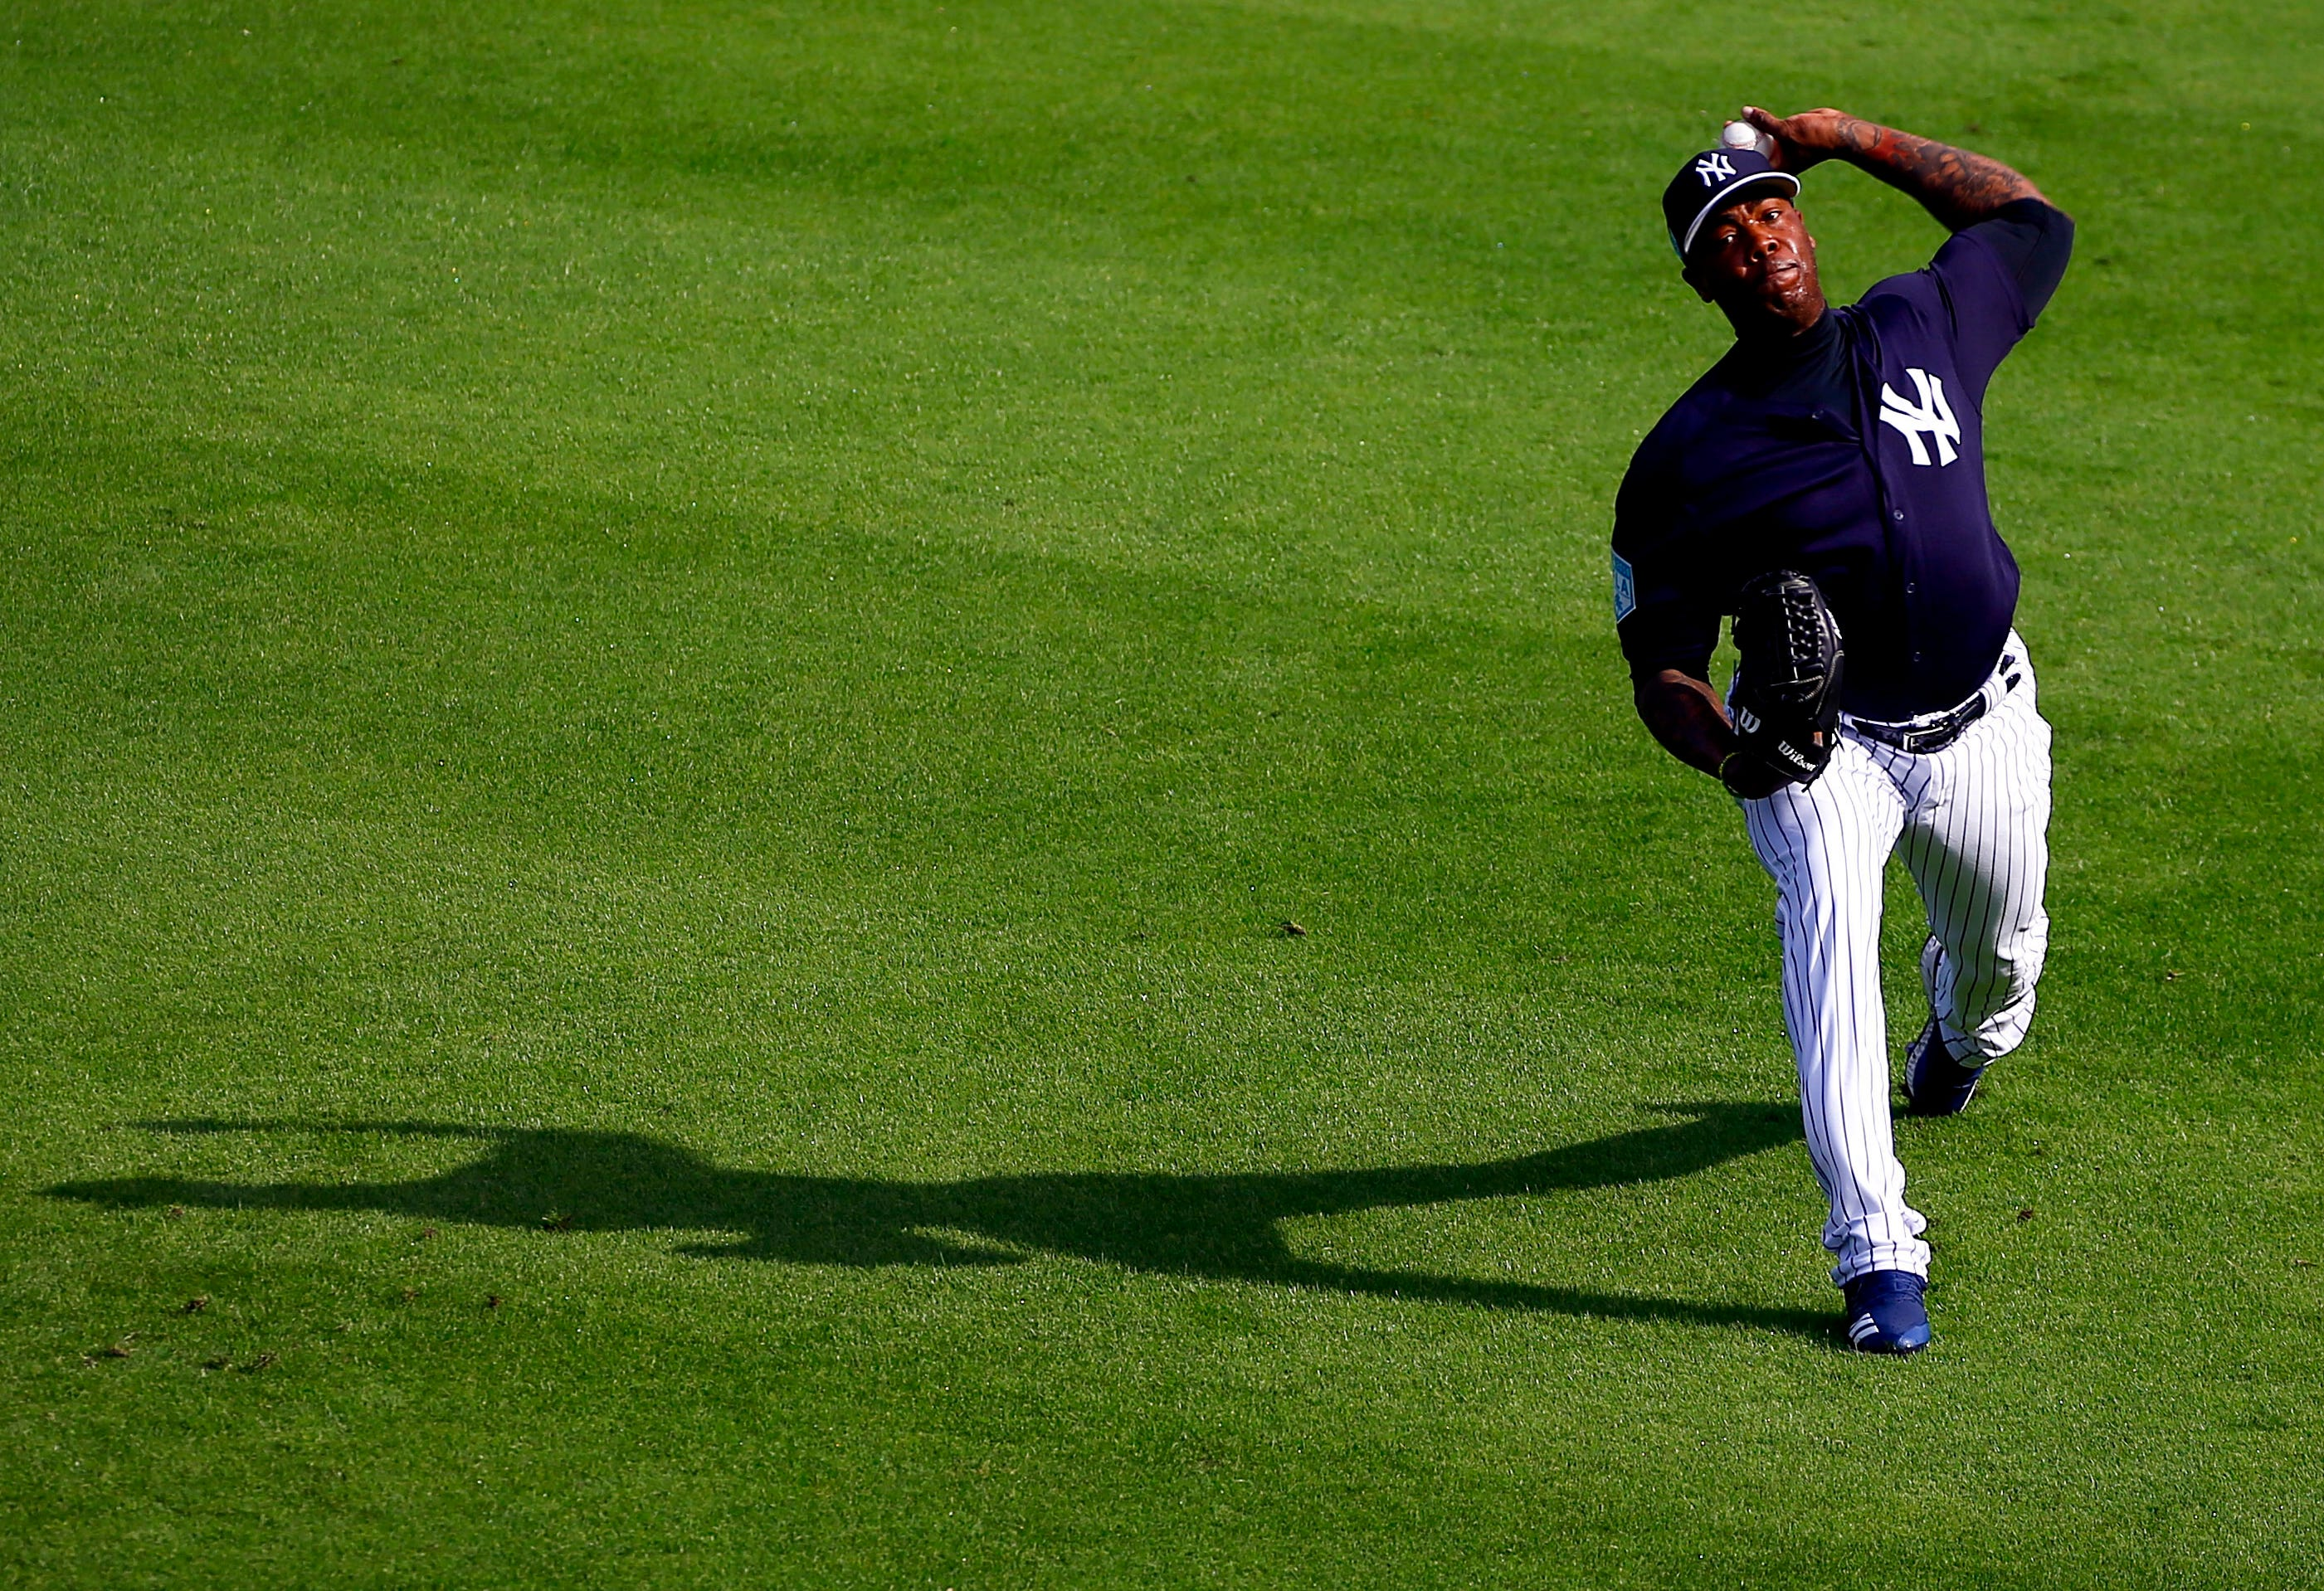 Feb. 19: Yankees closer Aroldis Chapman throws during a workout in Tampa.